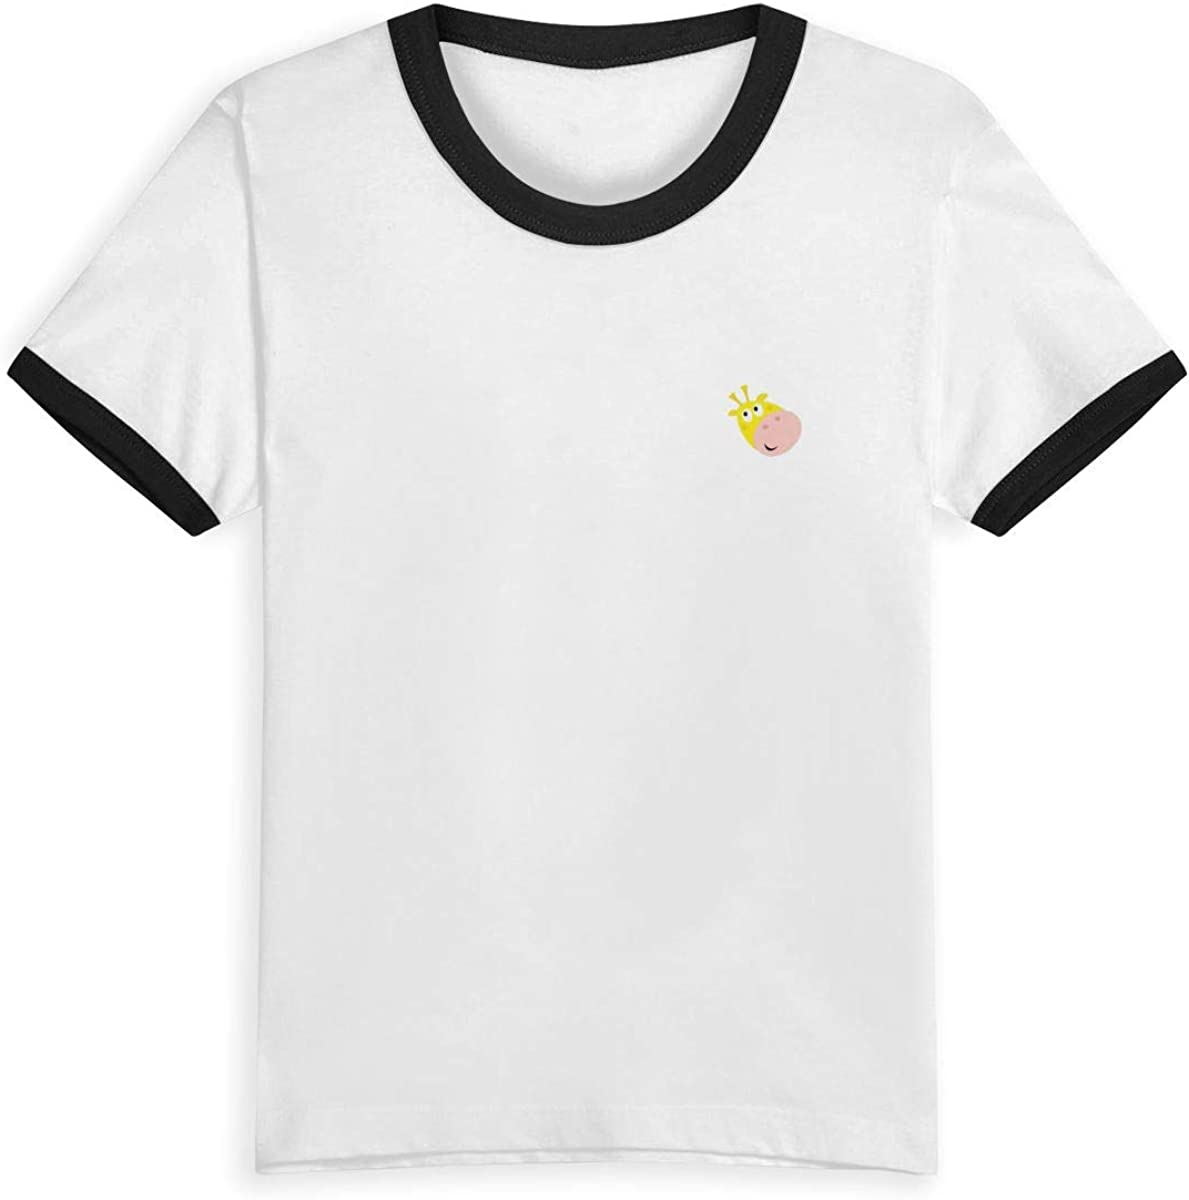 LX LUCasual Childrens Printing Logo Round Collar Short Sleeve T-Shirt Cotton Tee for Kids